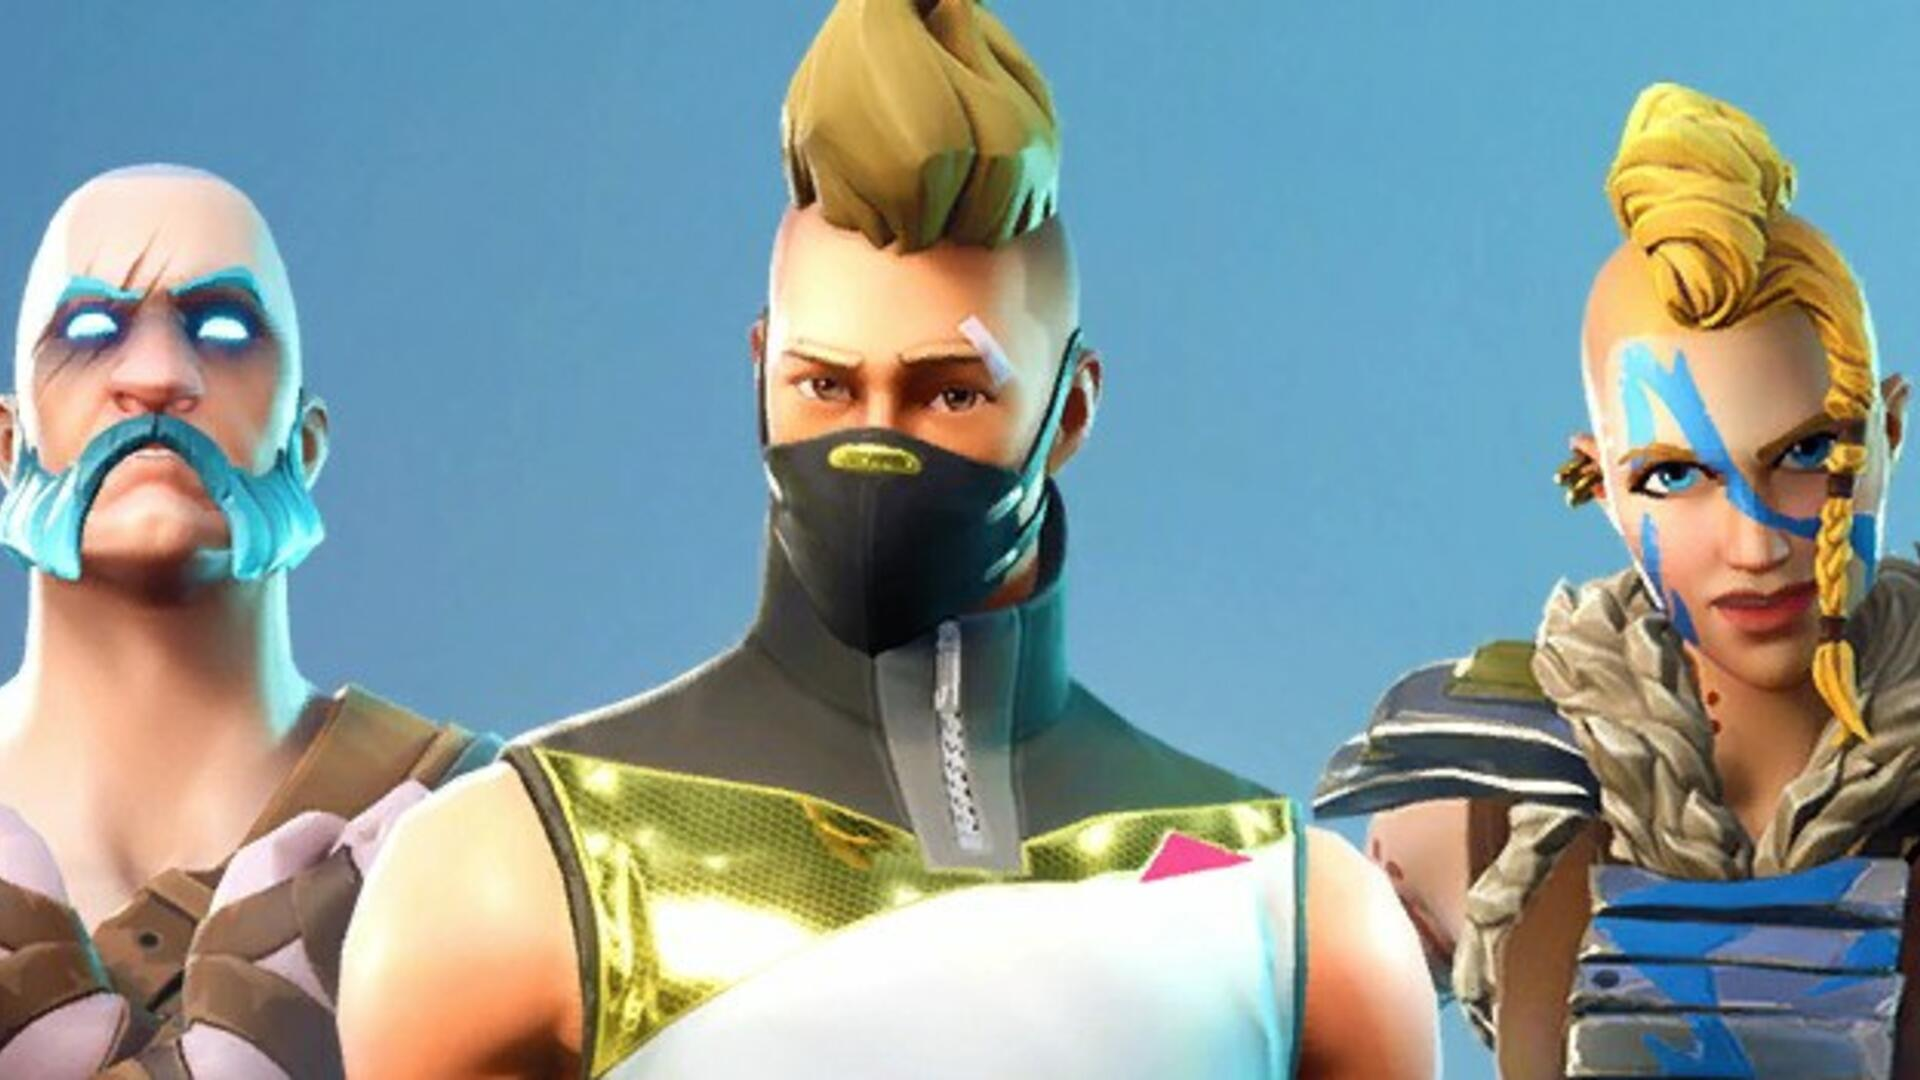 Fortnite Season 5 Skins - All the New Battle Pass Skins Including Ragnarok, Drift, and Huntress